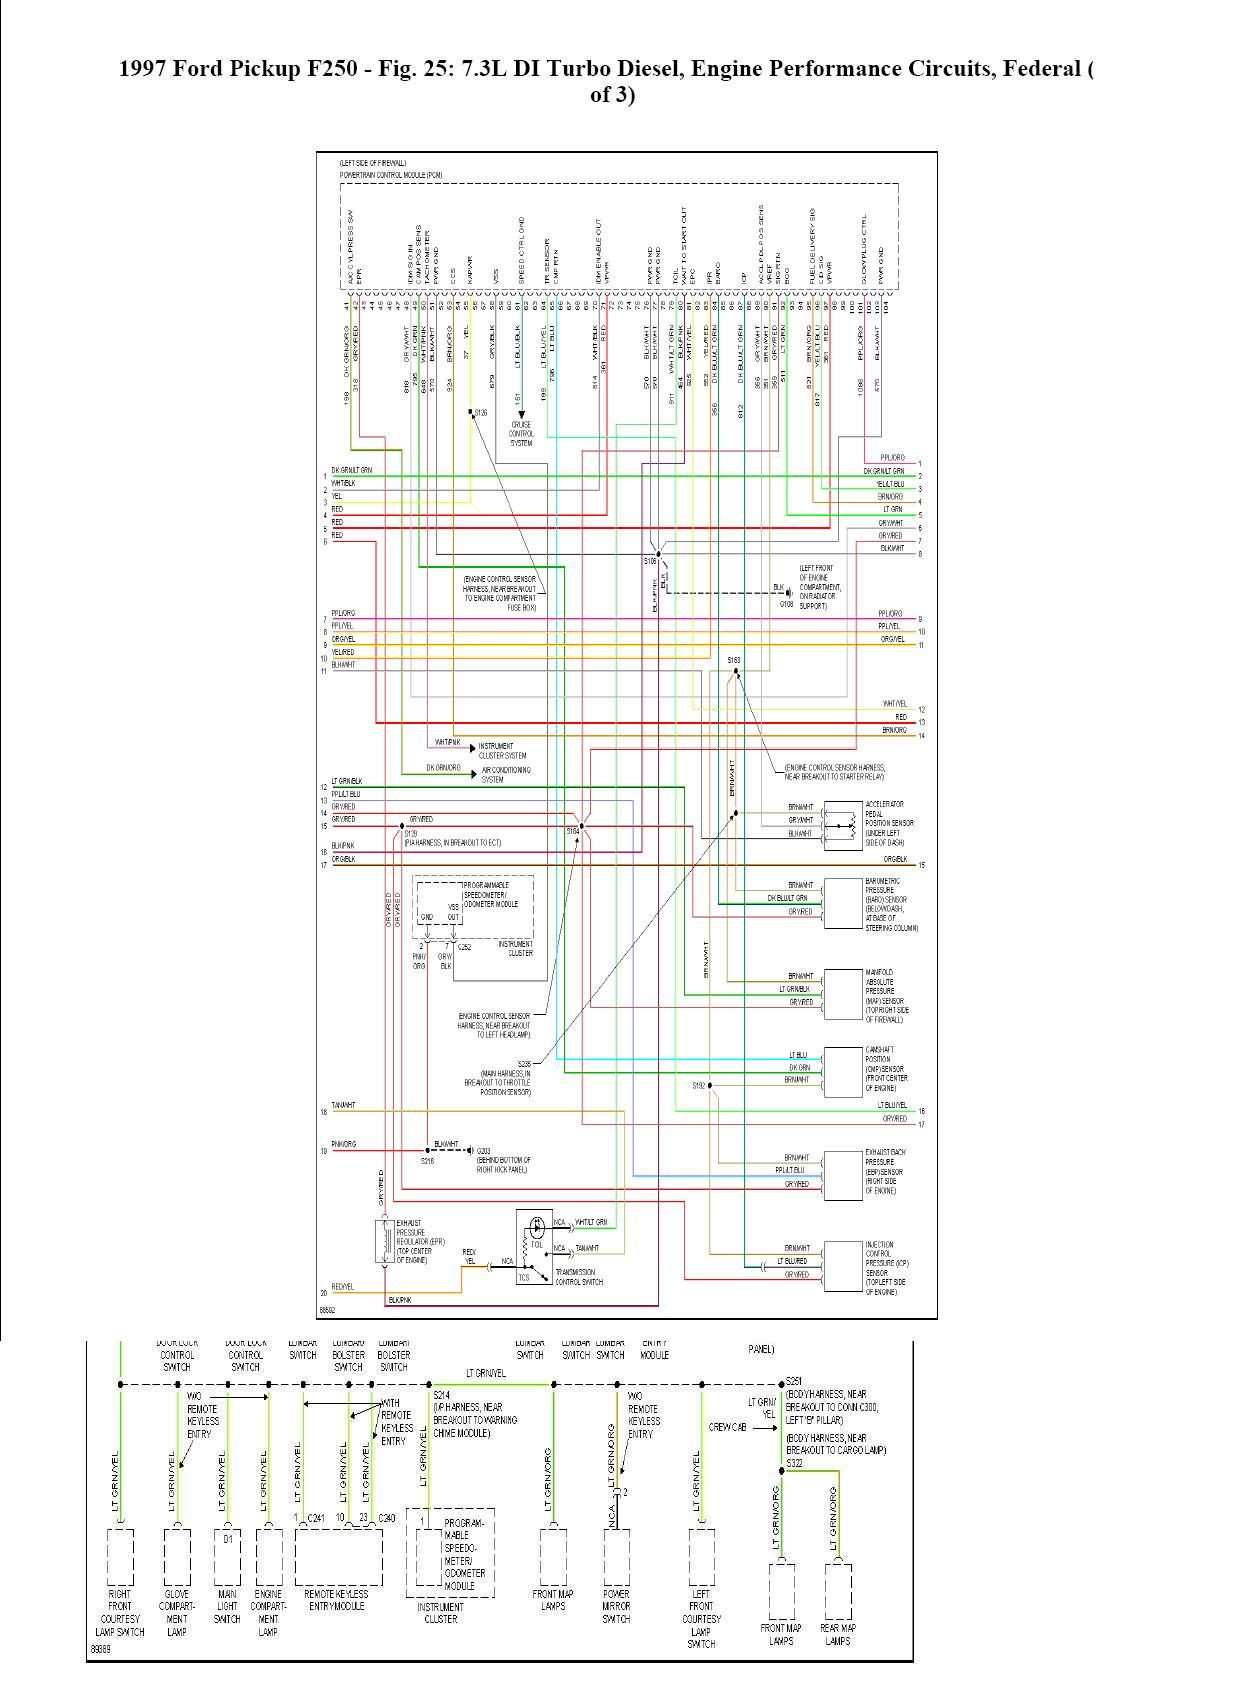 complete wiring schematic ... | powerstroke | 1997 ford f350 ... on